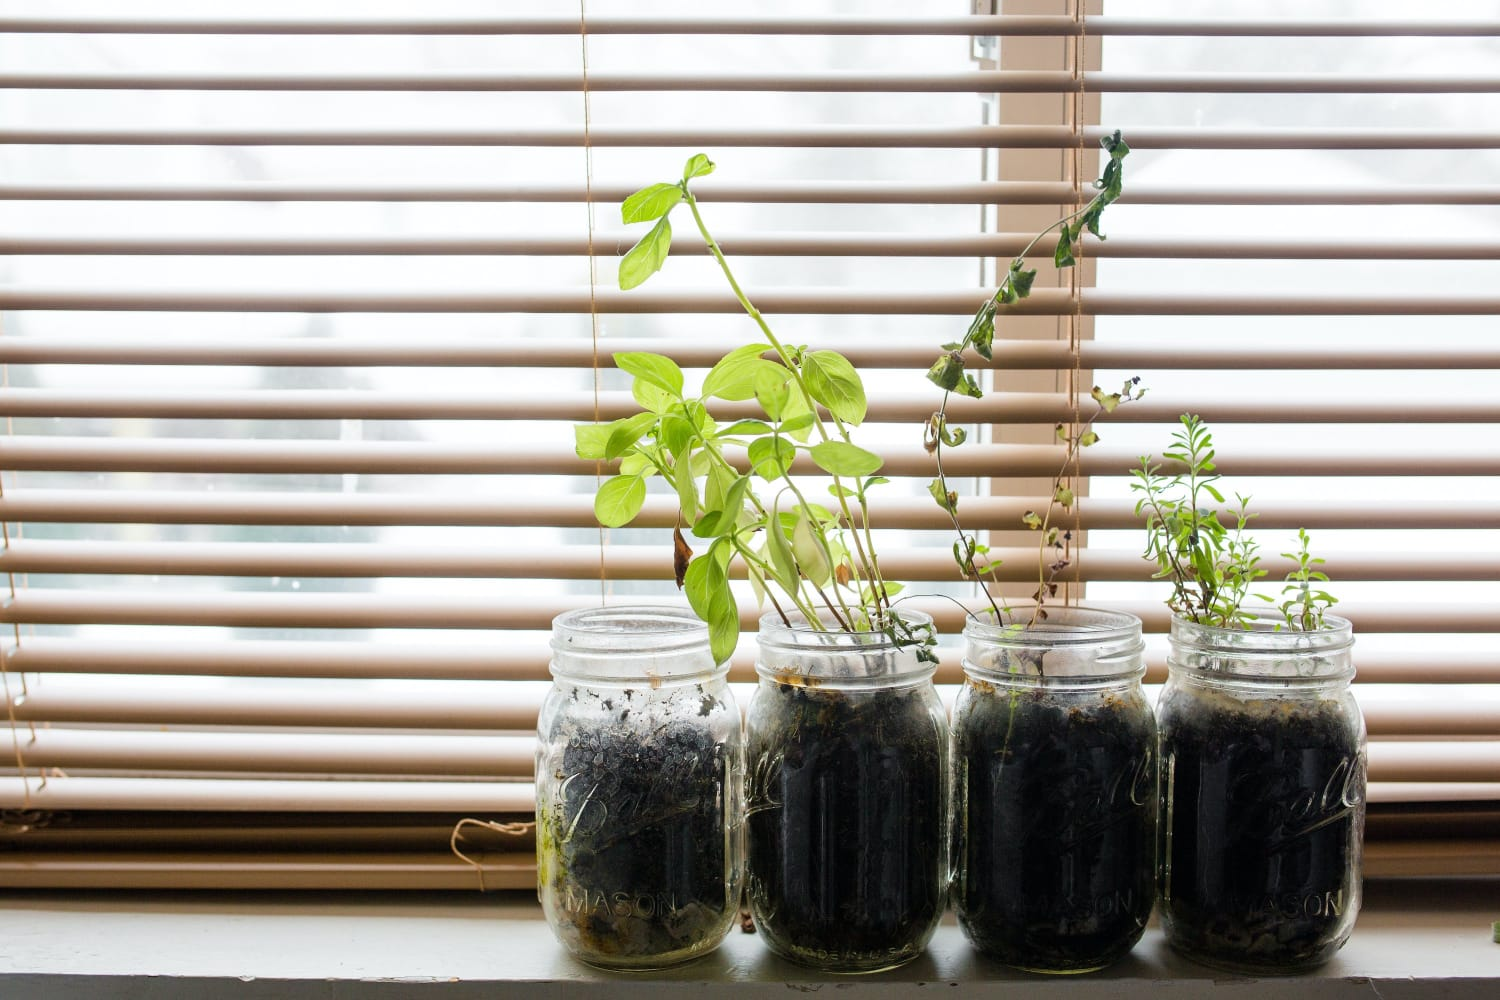 Windowsill Wonders: Small Pots, Little Effort, Big Benefits